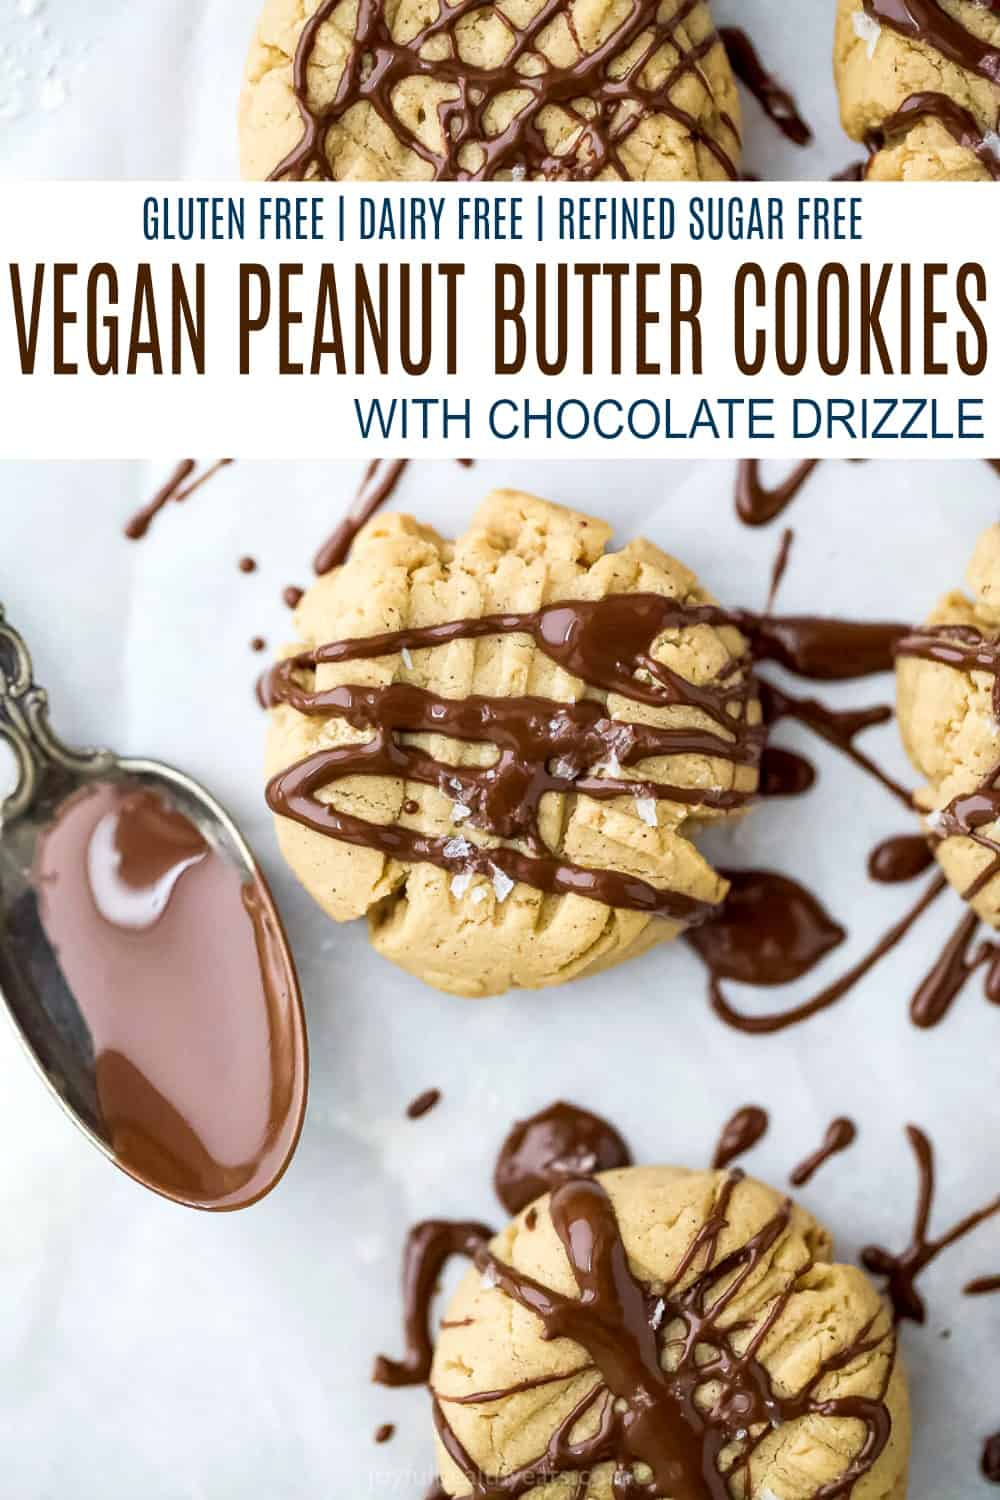 pinterest image for vegan peanut butter cookie with chocolate drizzle